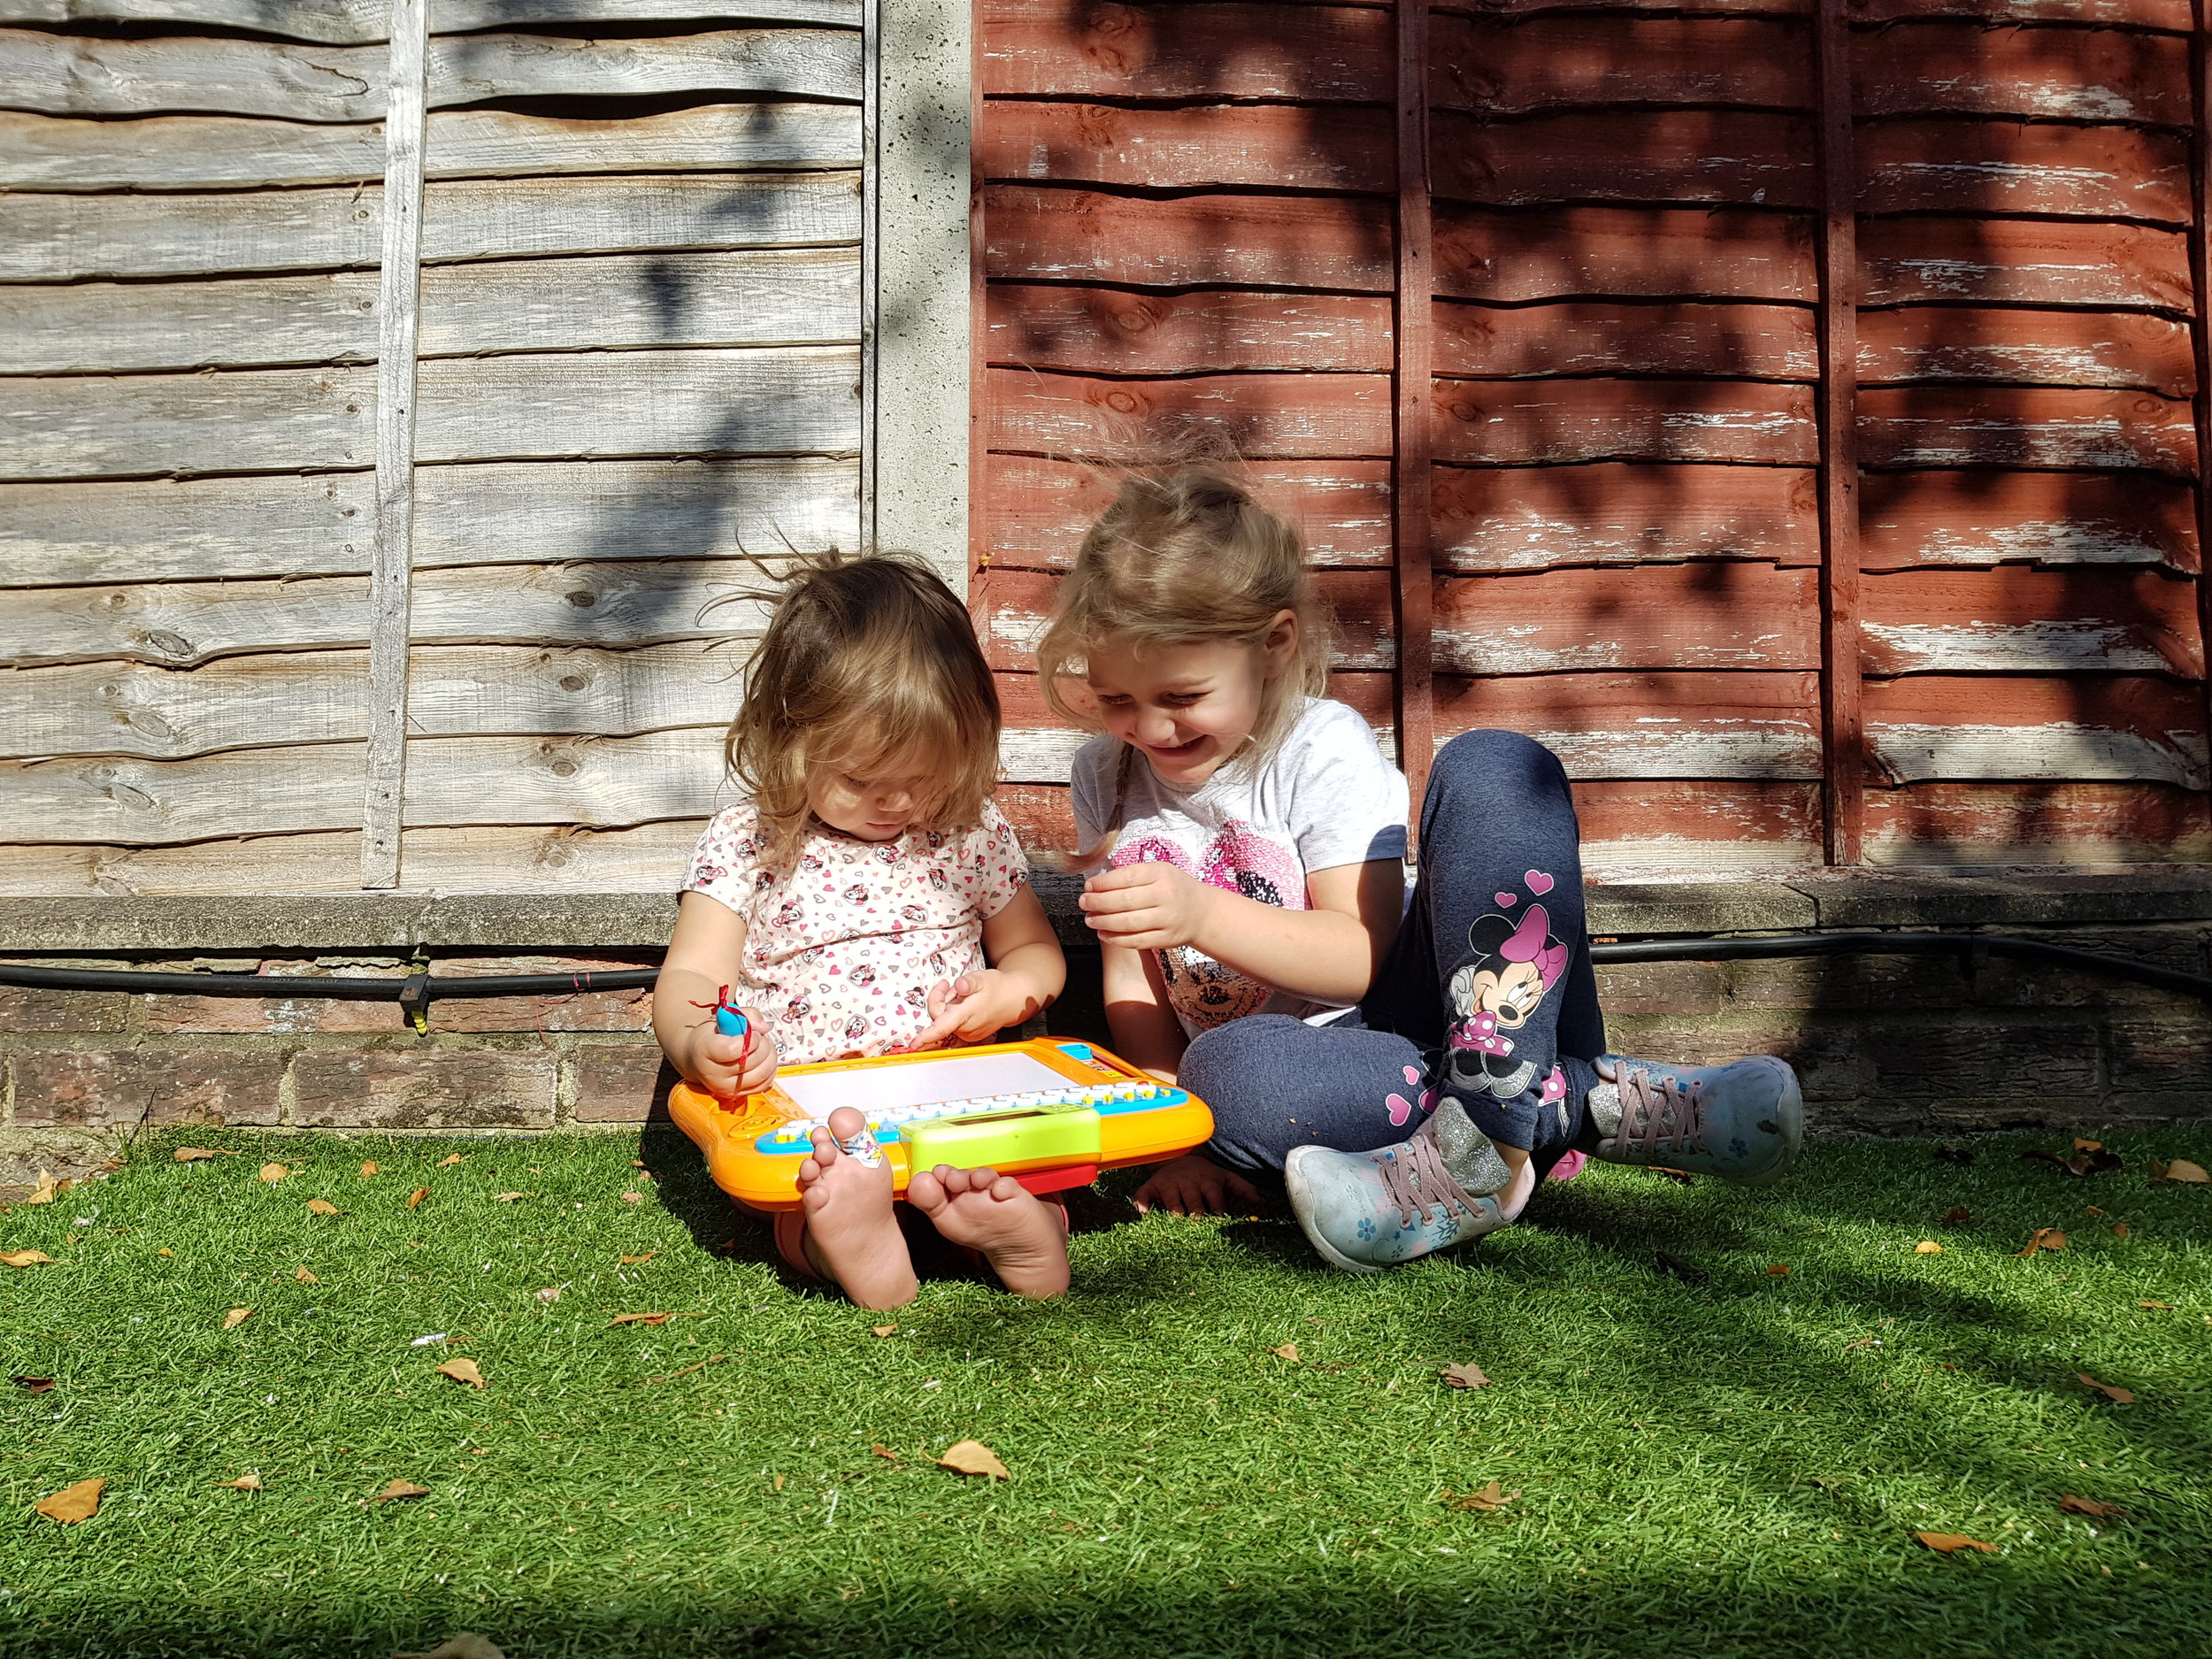 Playing in the garden with their new toy